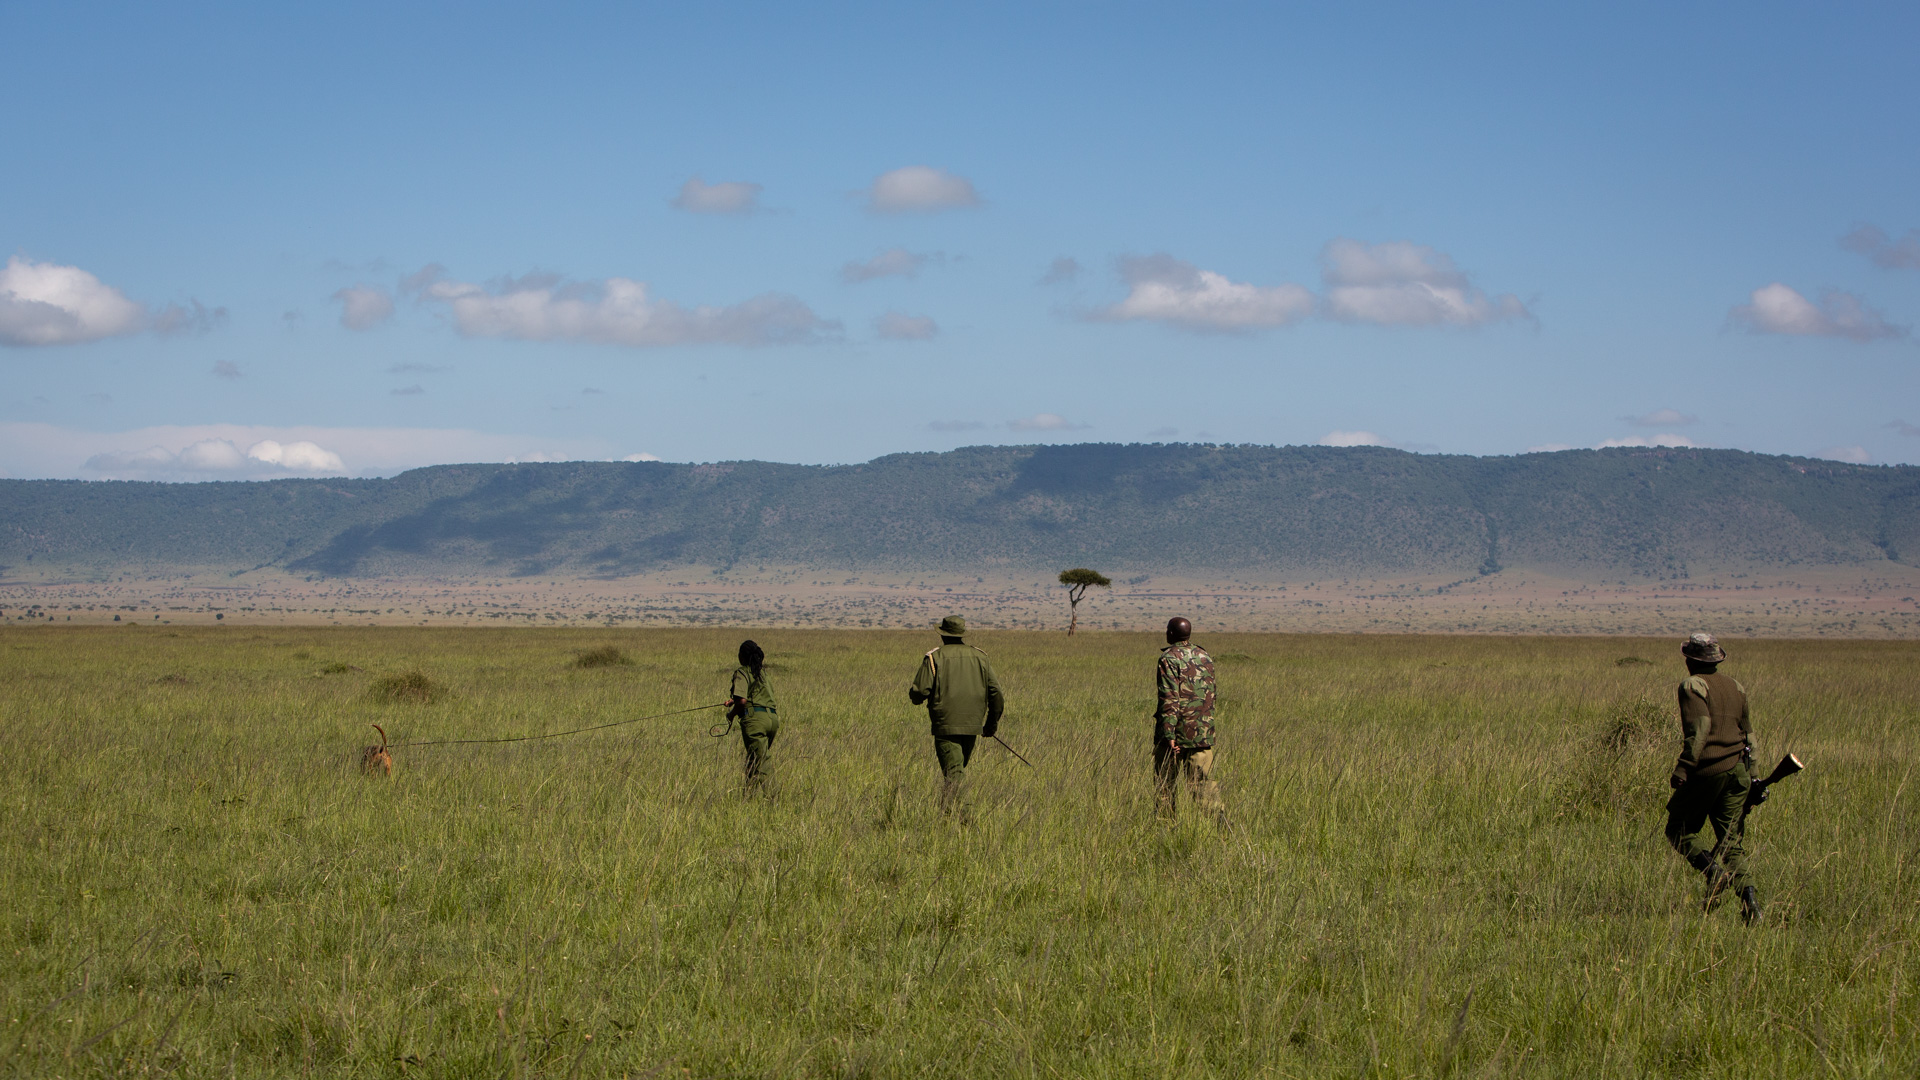 canine unit, silent heroes, mara conservancy